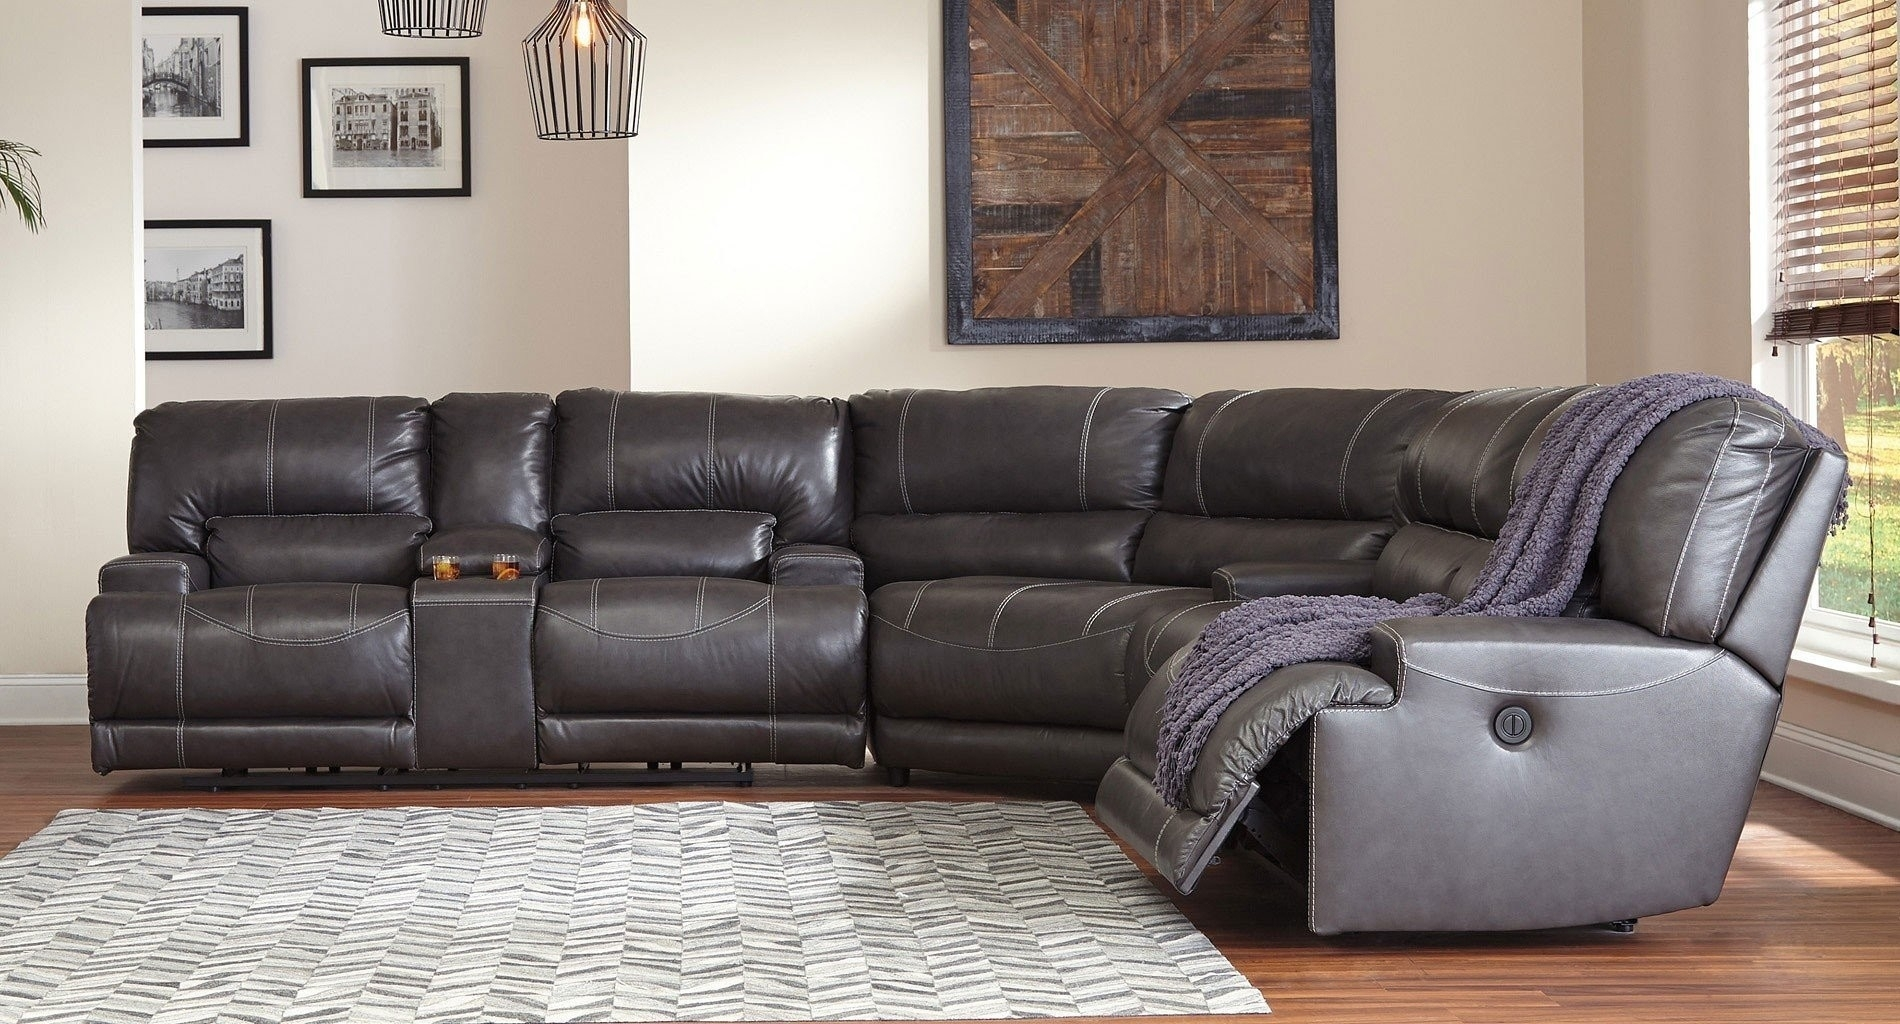 Grey Leather Reclining Sectional Clyde 3 Piece Power W Pwr Hdrst Intended For Clyde Grey Leather 3 Piece Power Reclining Sectionals With Pwr Hdrst & Usb (View 10 of 30)